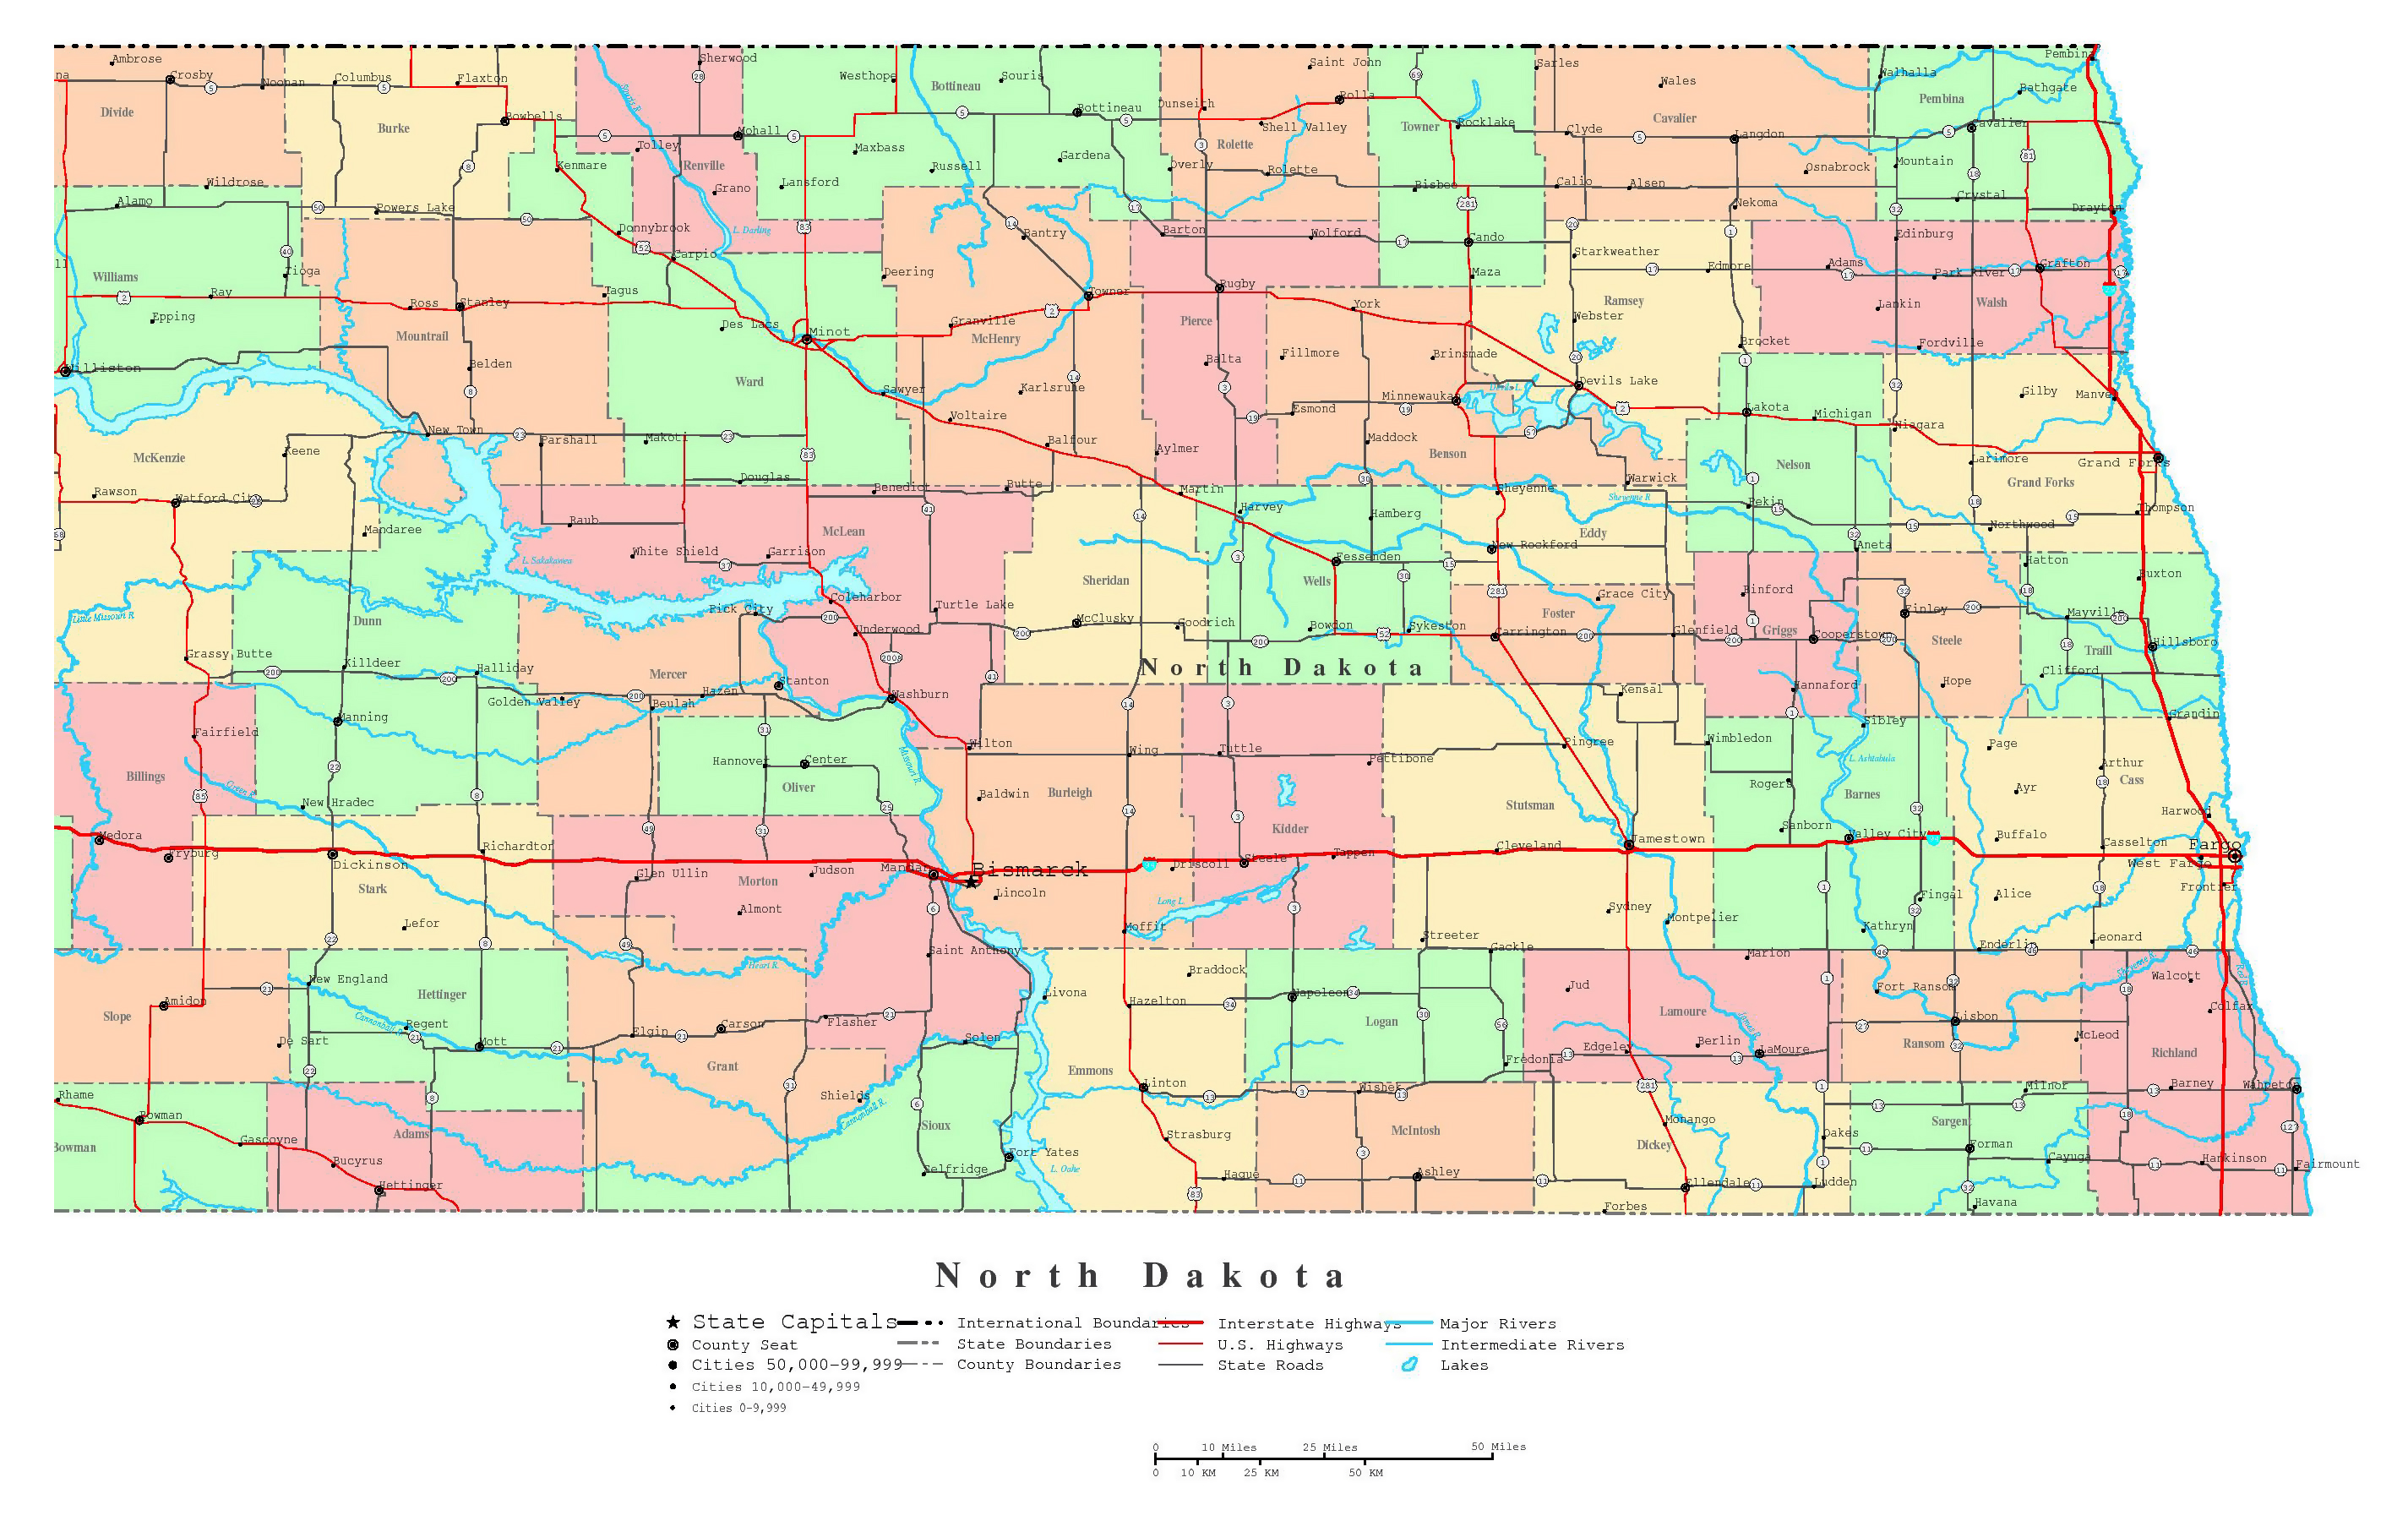 USA Interstate Highways Wall Map United States America Road - Usa map with major cities and highways